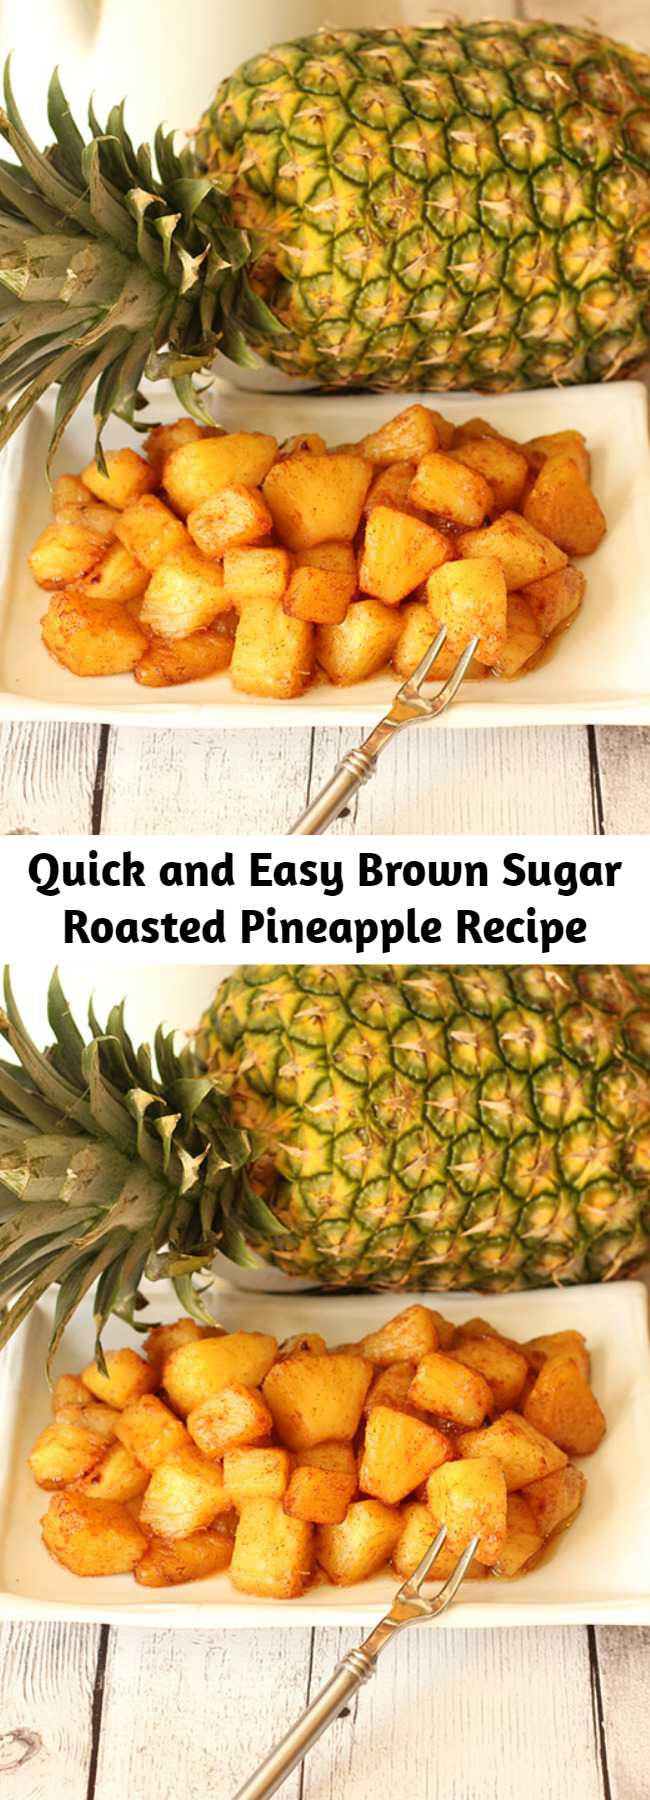 Quick and Easy Brown Sugar Roasted Pineapple Recipe - We love this roasted pineapple with brown sugar, butter and a hint of cinnamon. It is a quick side dish that is as good as grilled pineapple any day! Roasting concentrates the sweet pineapple flavor for delicious results.